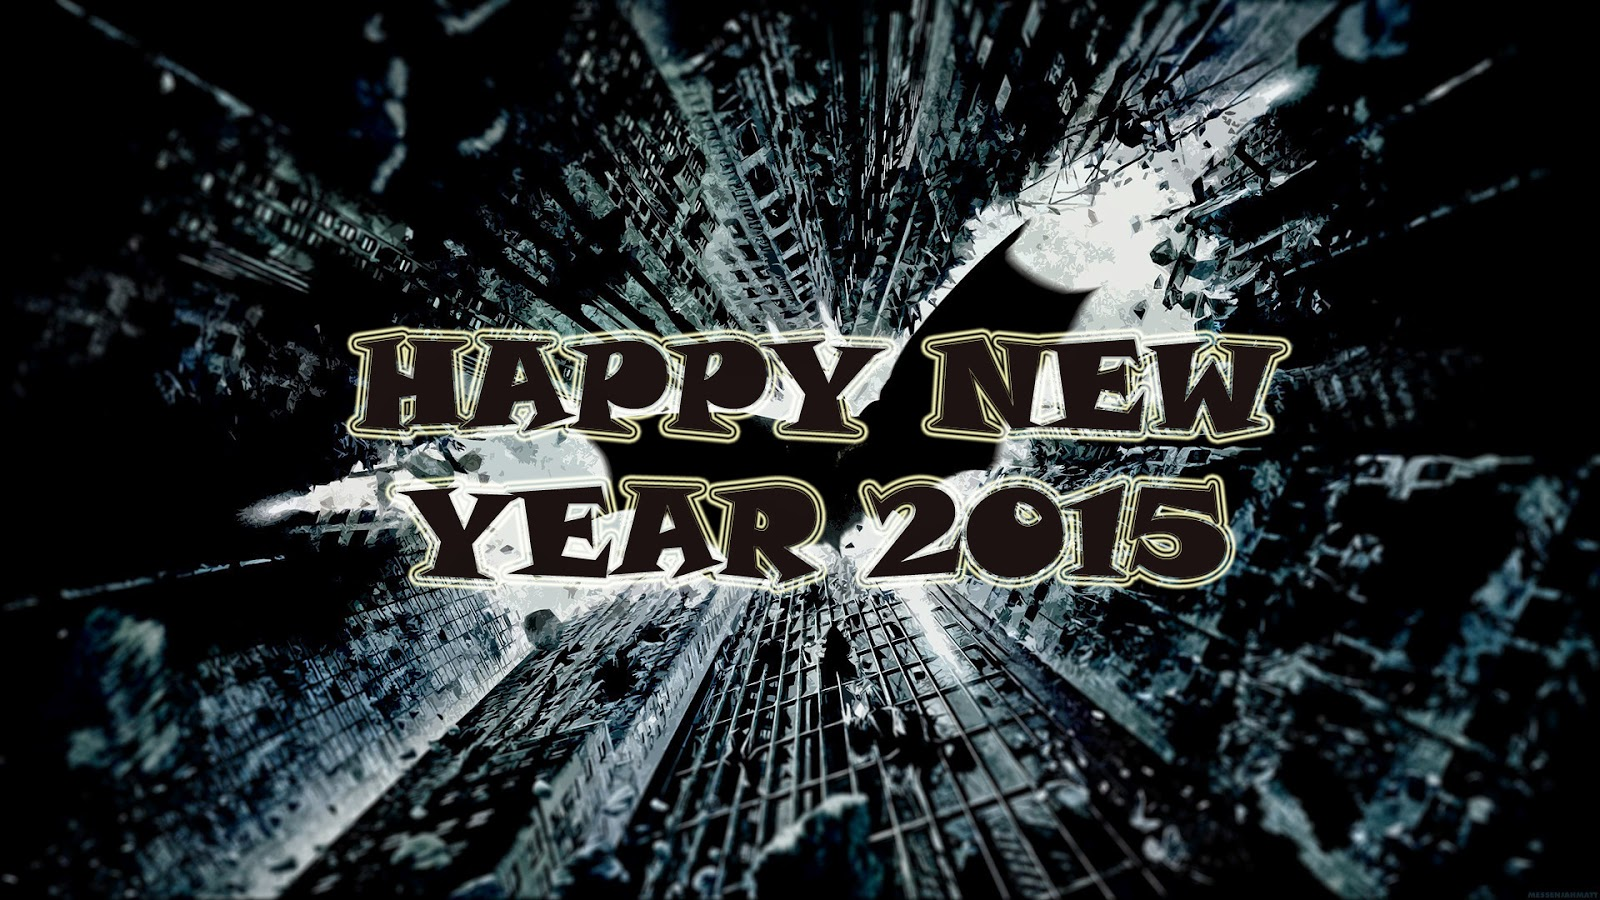 Top Class New Year Images 2015 – Free Latest Photos